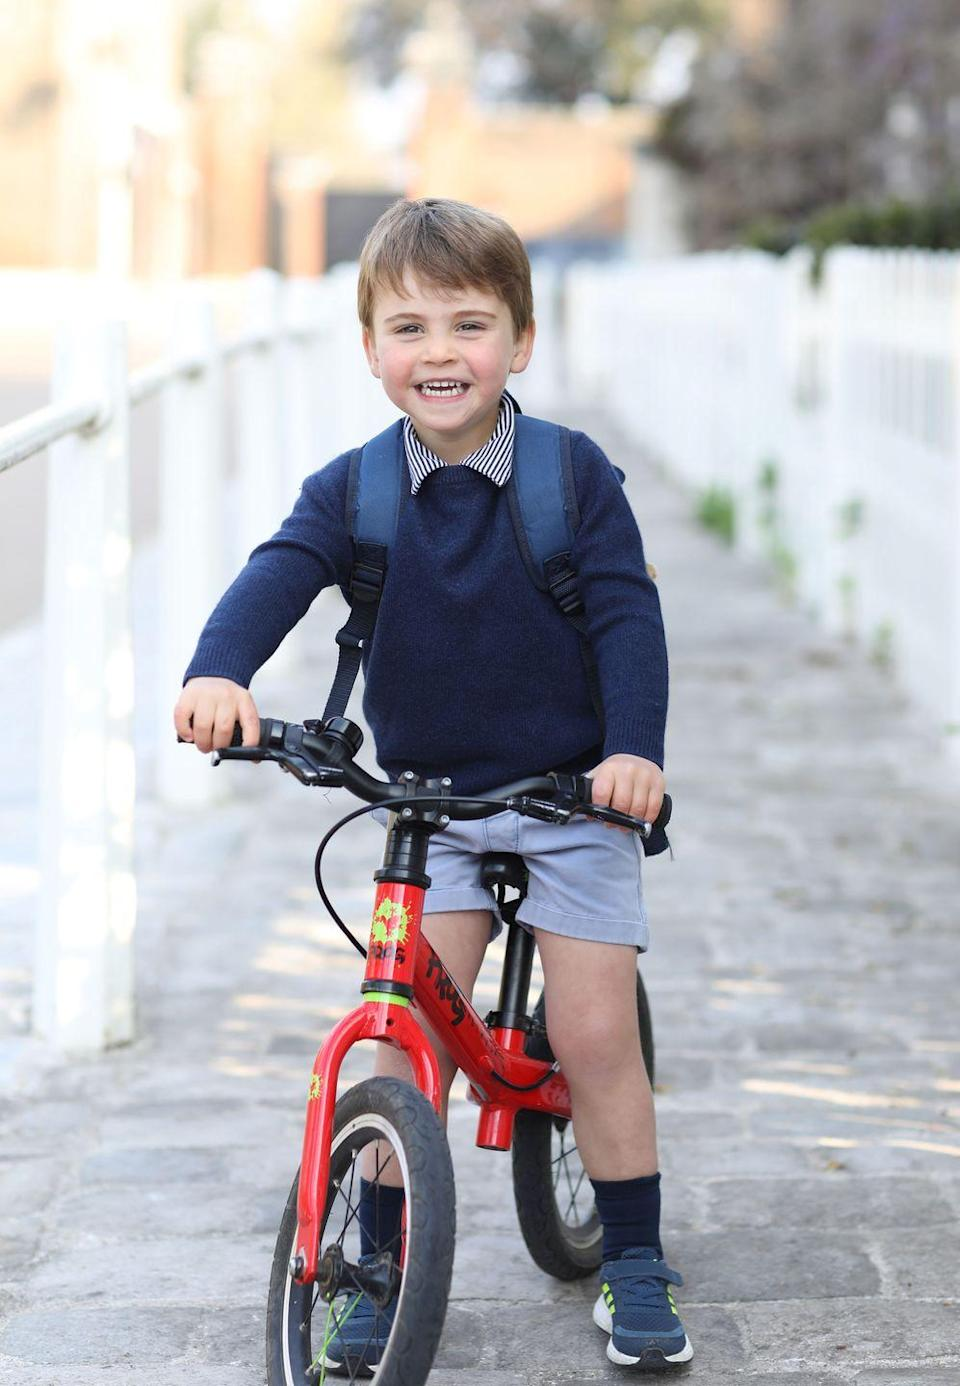 <p>Ahead of Prince Louis's 3rd birthday, the Duchess of Cambridge released this sweet photo of Louis on a bike, shortly before the young royal left for his first day of nursery at the Willcocks Nursery School.</p>